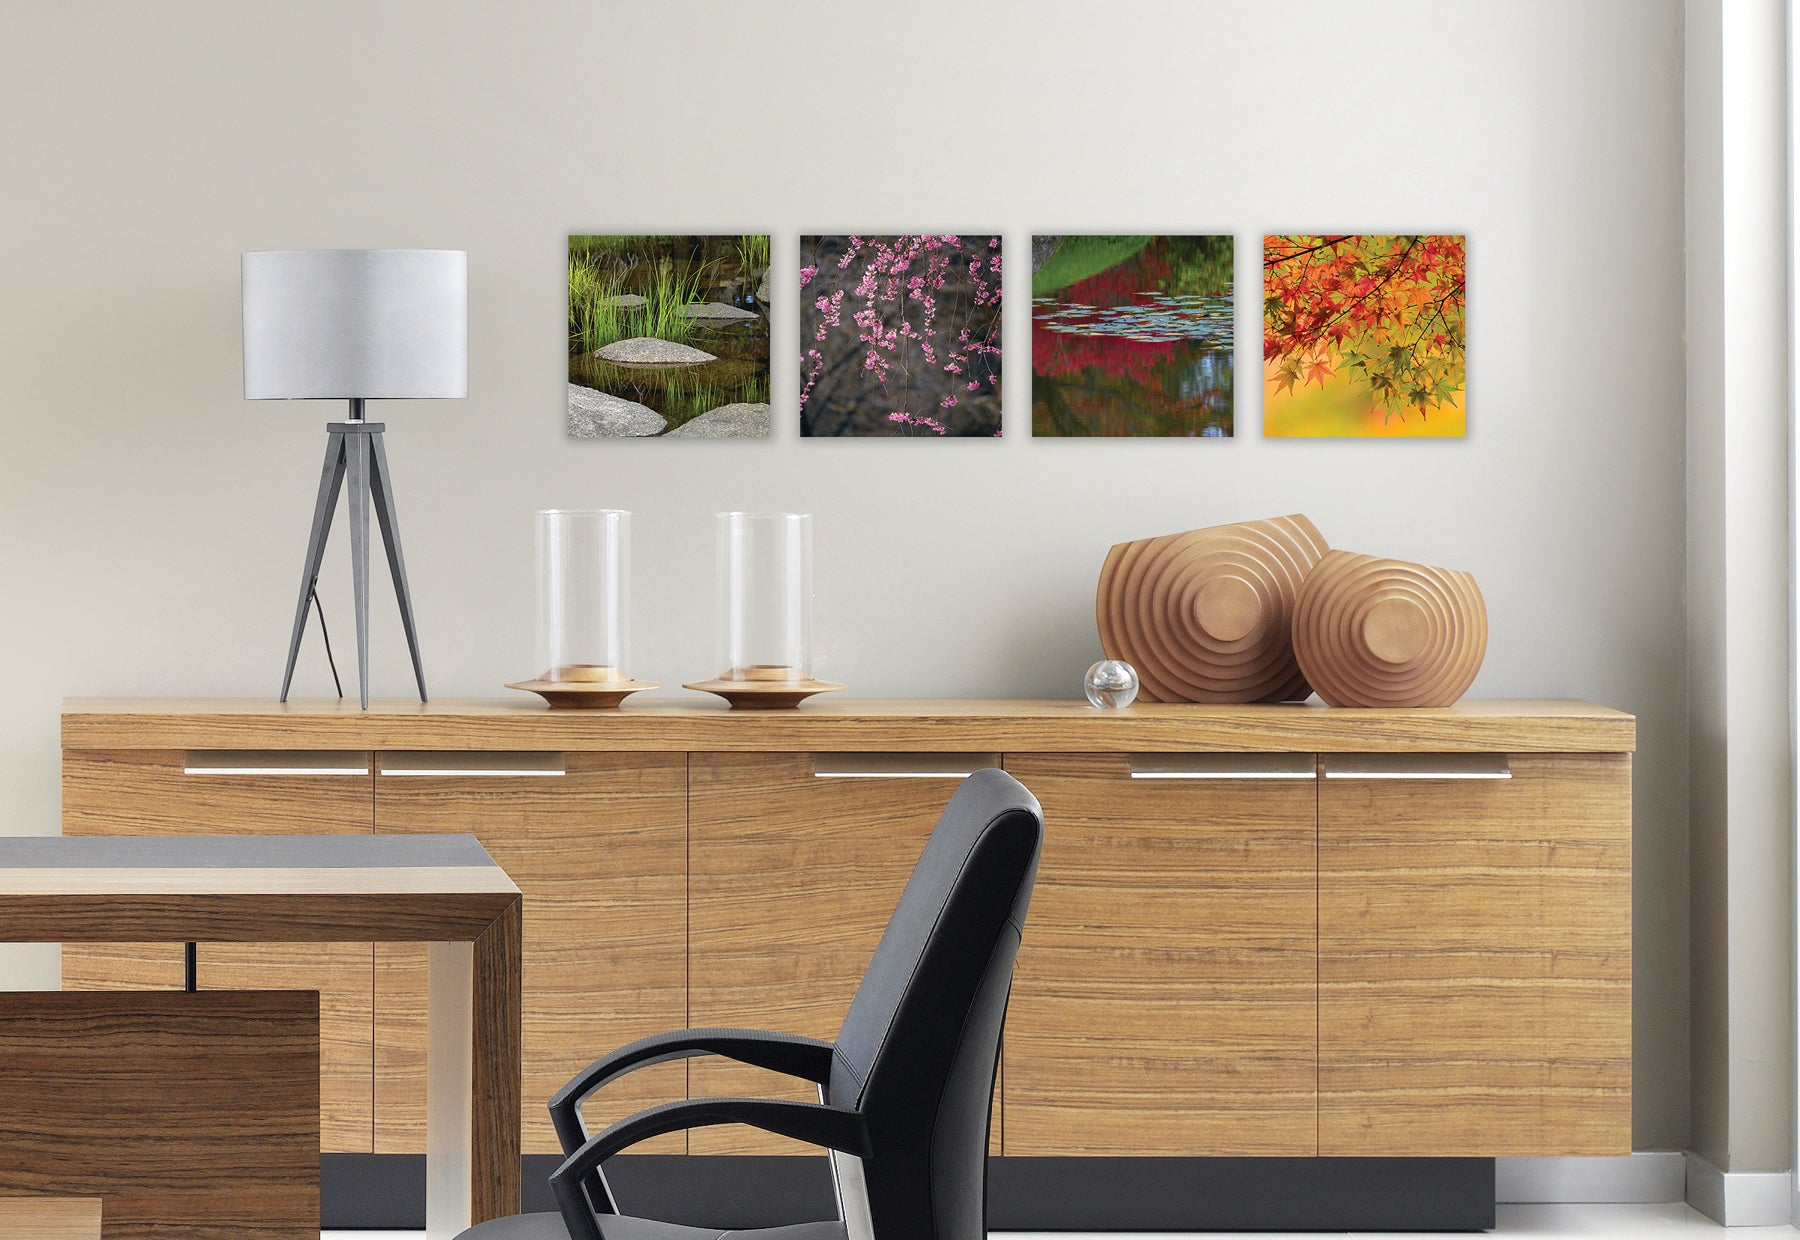 Modern dining room with light brown wood console table with sculpture and lamp featuring four square photographs by Peter Lik of traditional Zen gardens